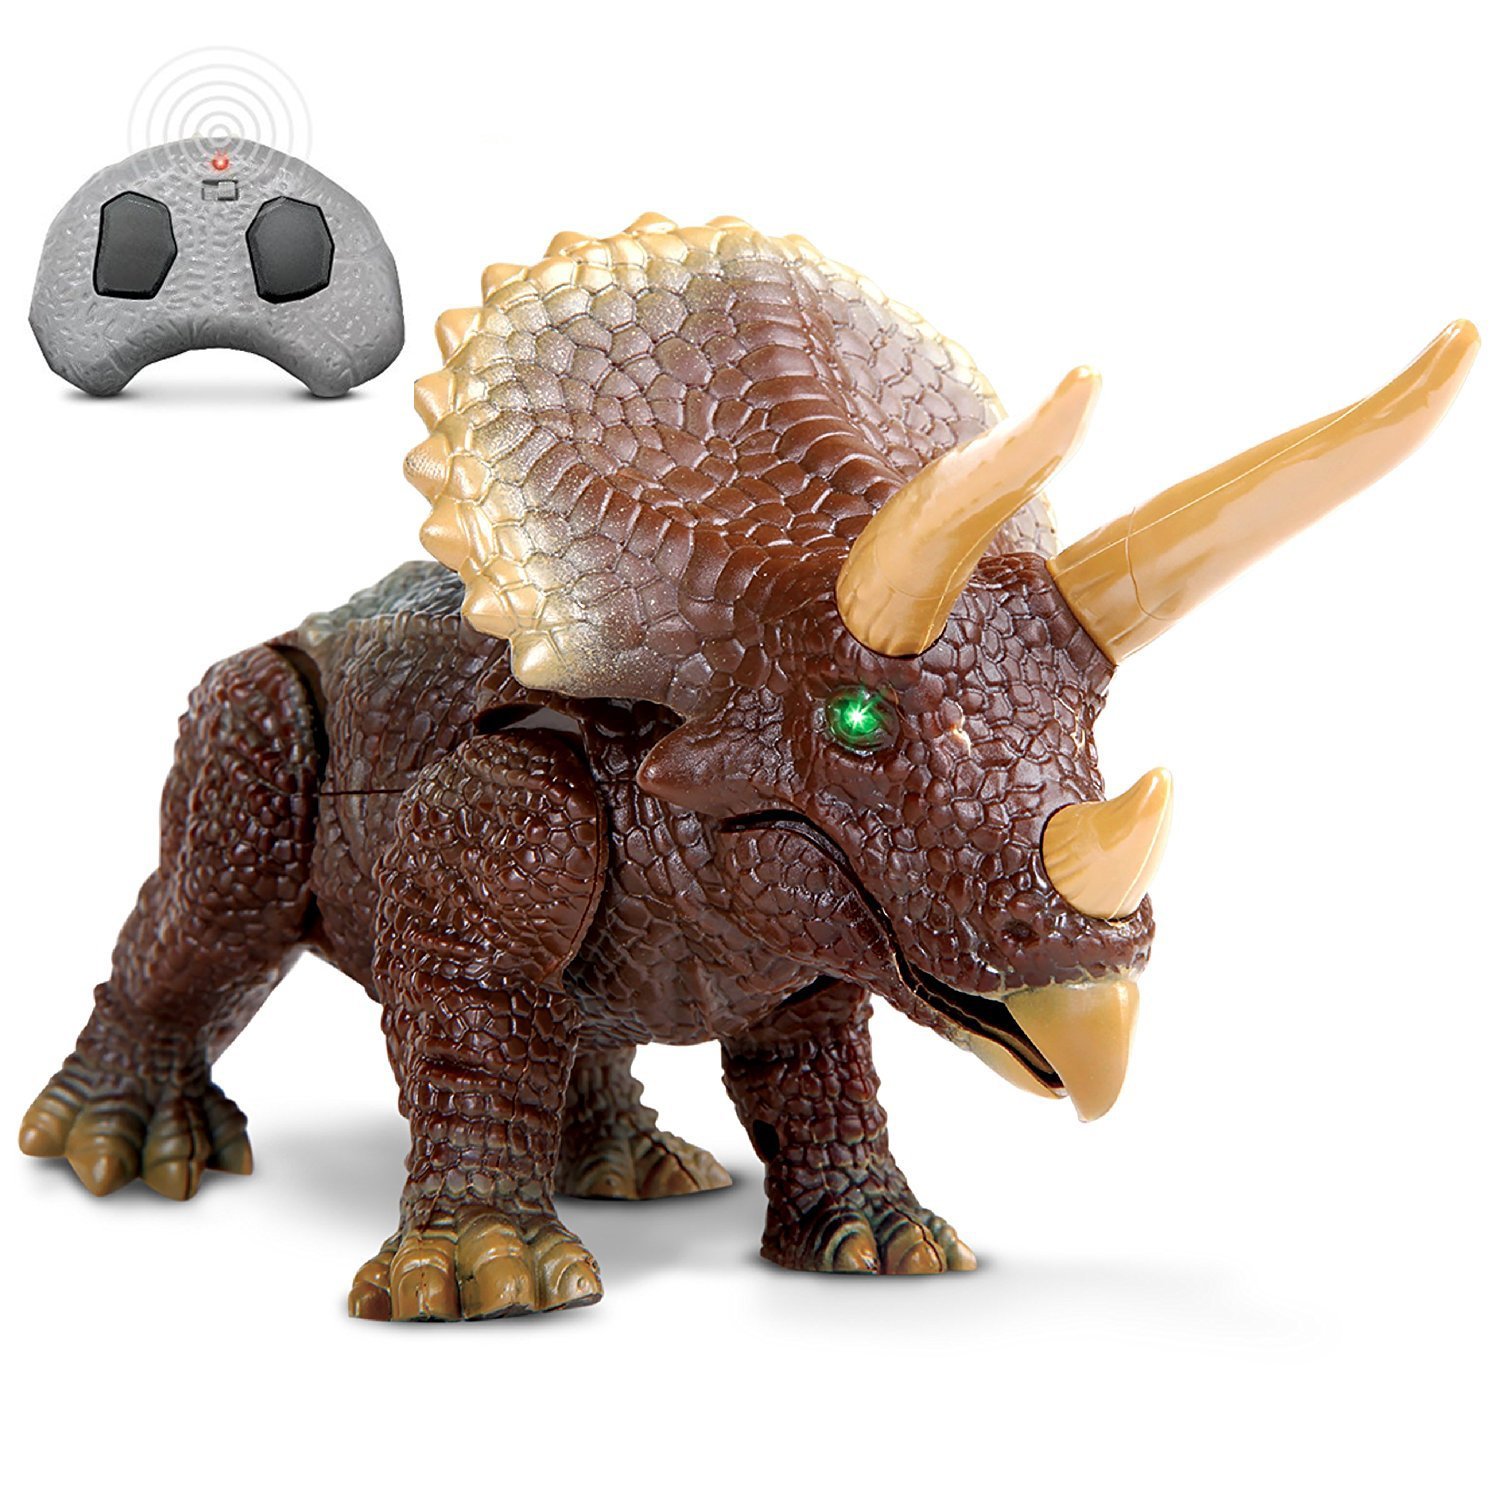 DISCOVERY KIDS RC Triceratops, LED Infrared Remote Control, Built-In Speakers W/ Digital Sound Effects, Figure Stands 10 Inches Long, Includes Glowing Eyes, Life-Like Motion, A Great Toy For Girls/Boy